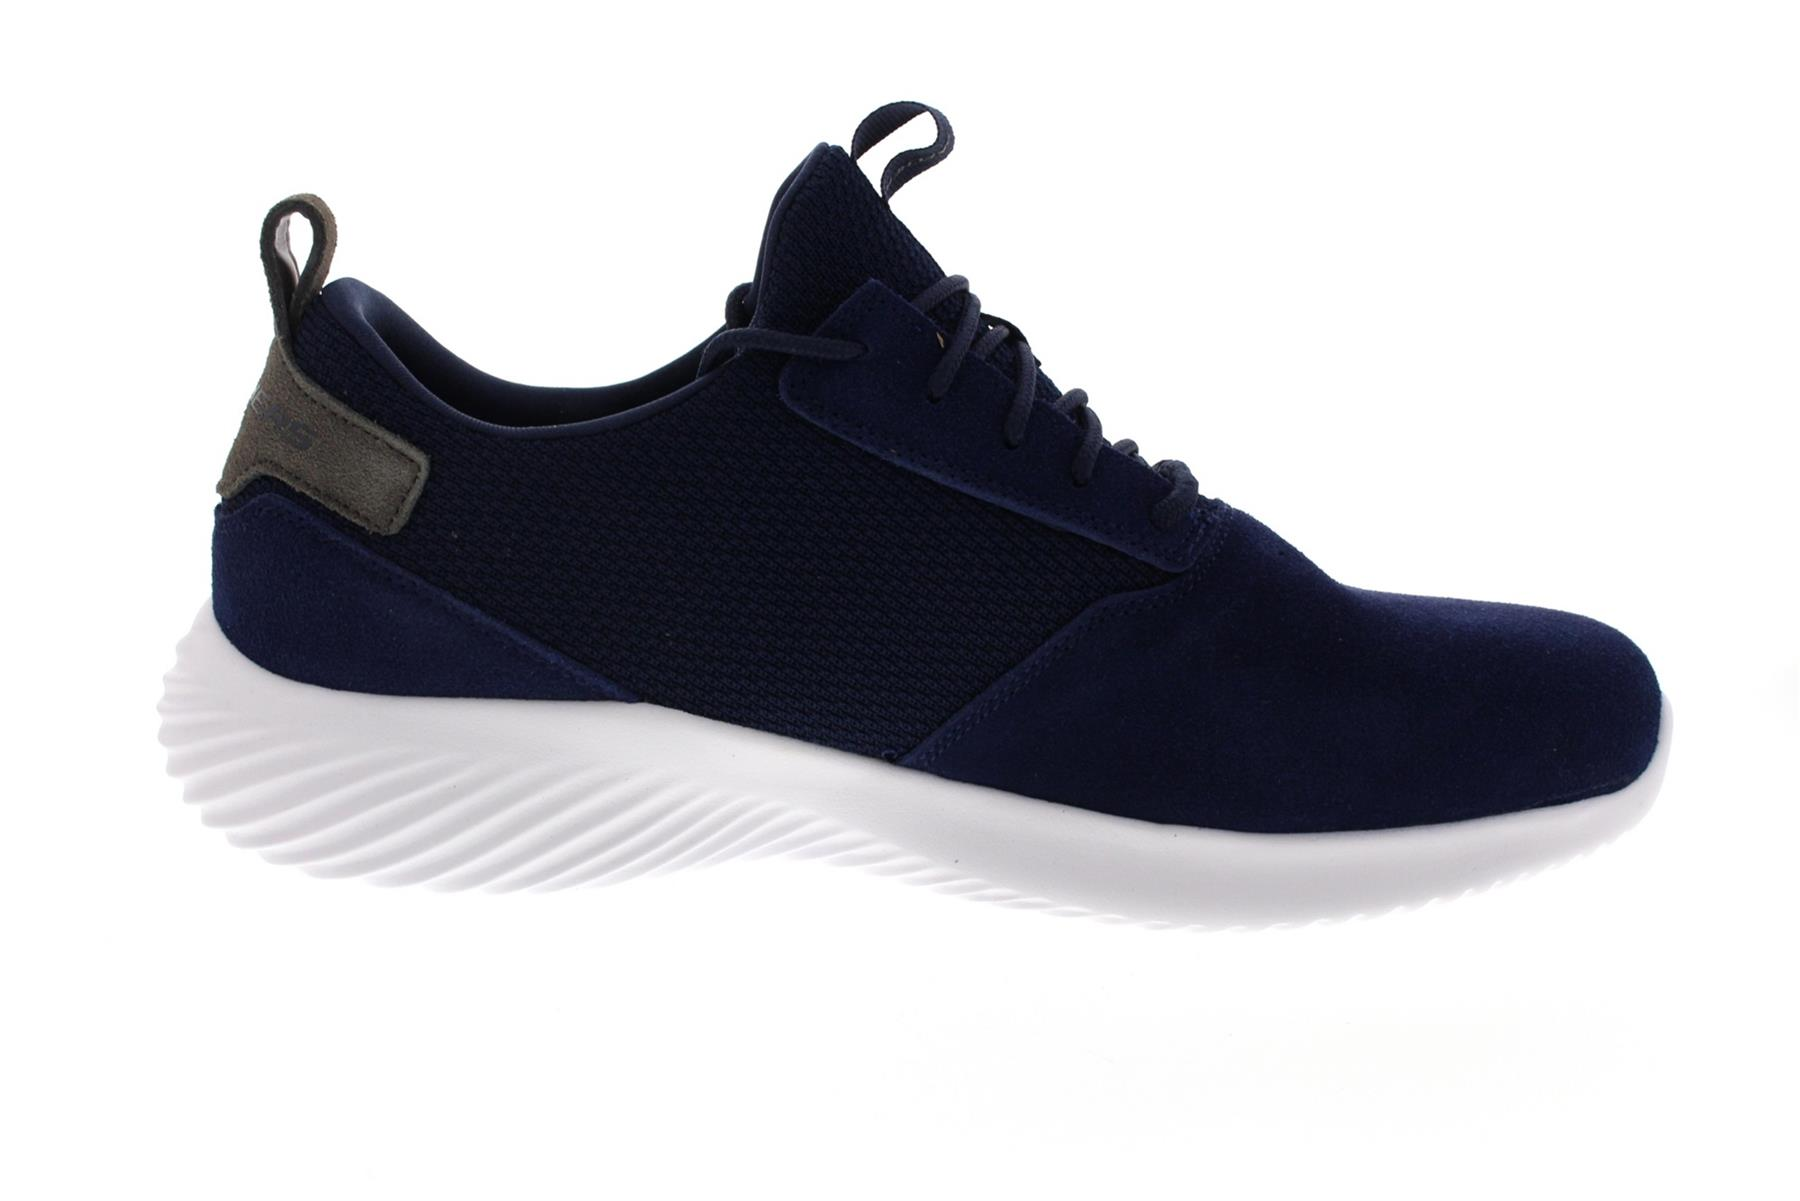 Details about SKECHERS Men's Bounder Skich Comfort Training And Walking Sneakers in Navy